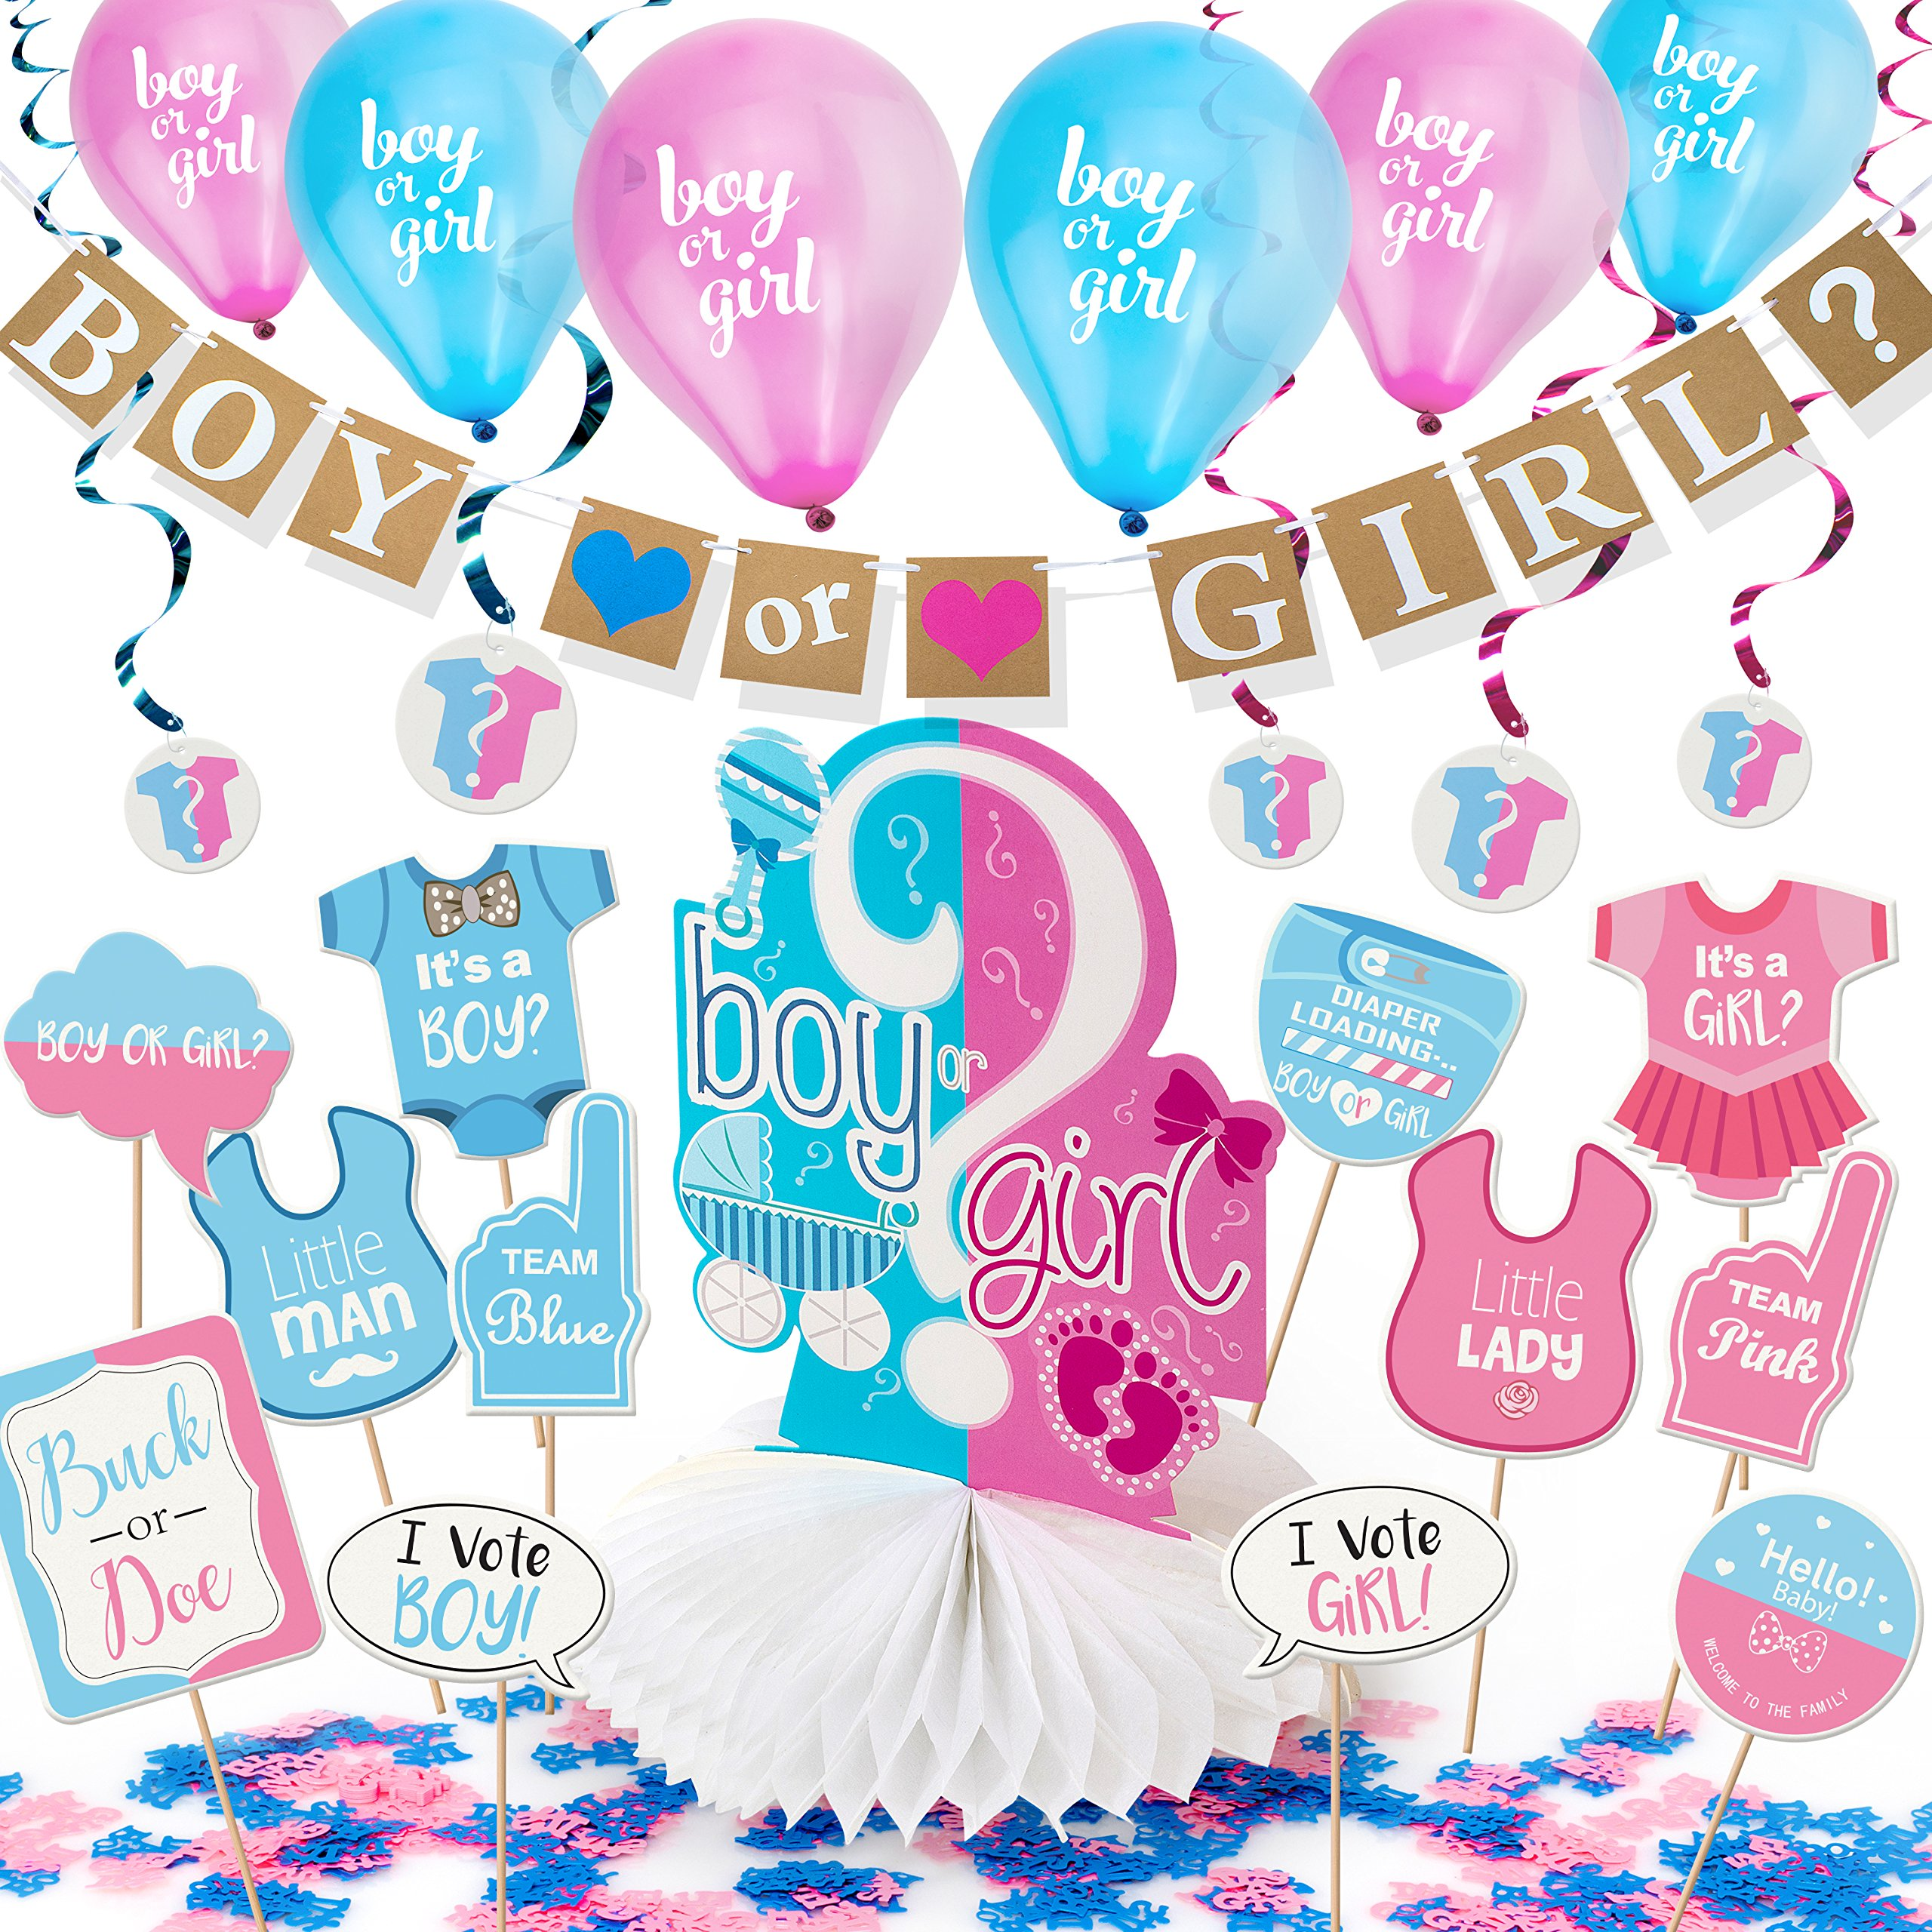 """ARTIT Gender Reveal Party Decoration Supplies Baby Shower Pregnancy Announcement Kit 31 Pack """"Boy or Girl"""" Favors Banner Centerpiece Pink Blue Balloons Hanging Swirls Tablecloth Photo Props Confetti by ArtIt"""